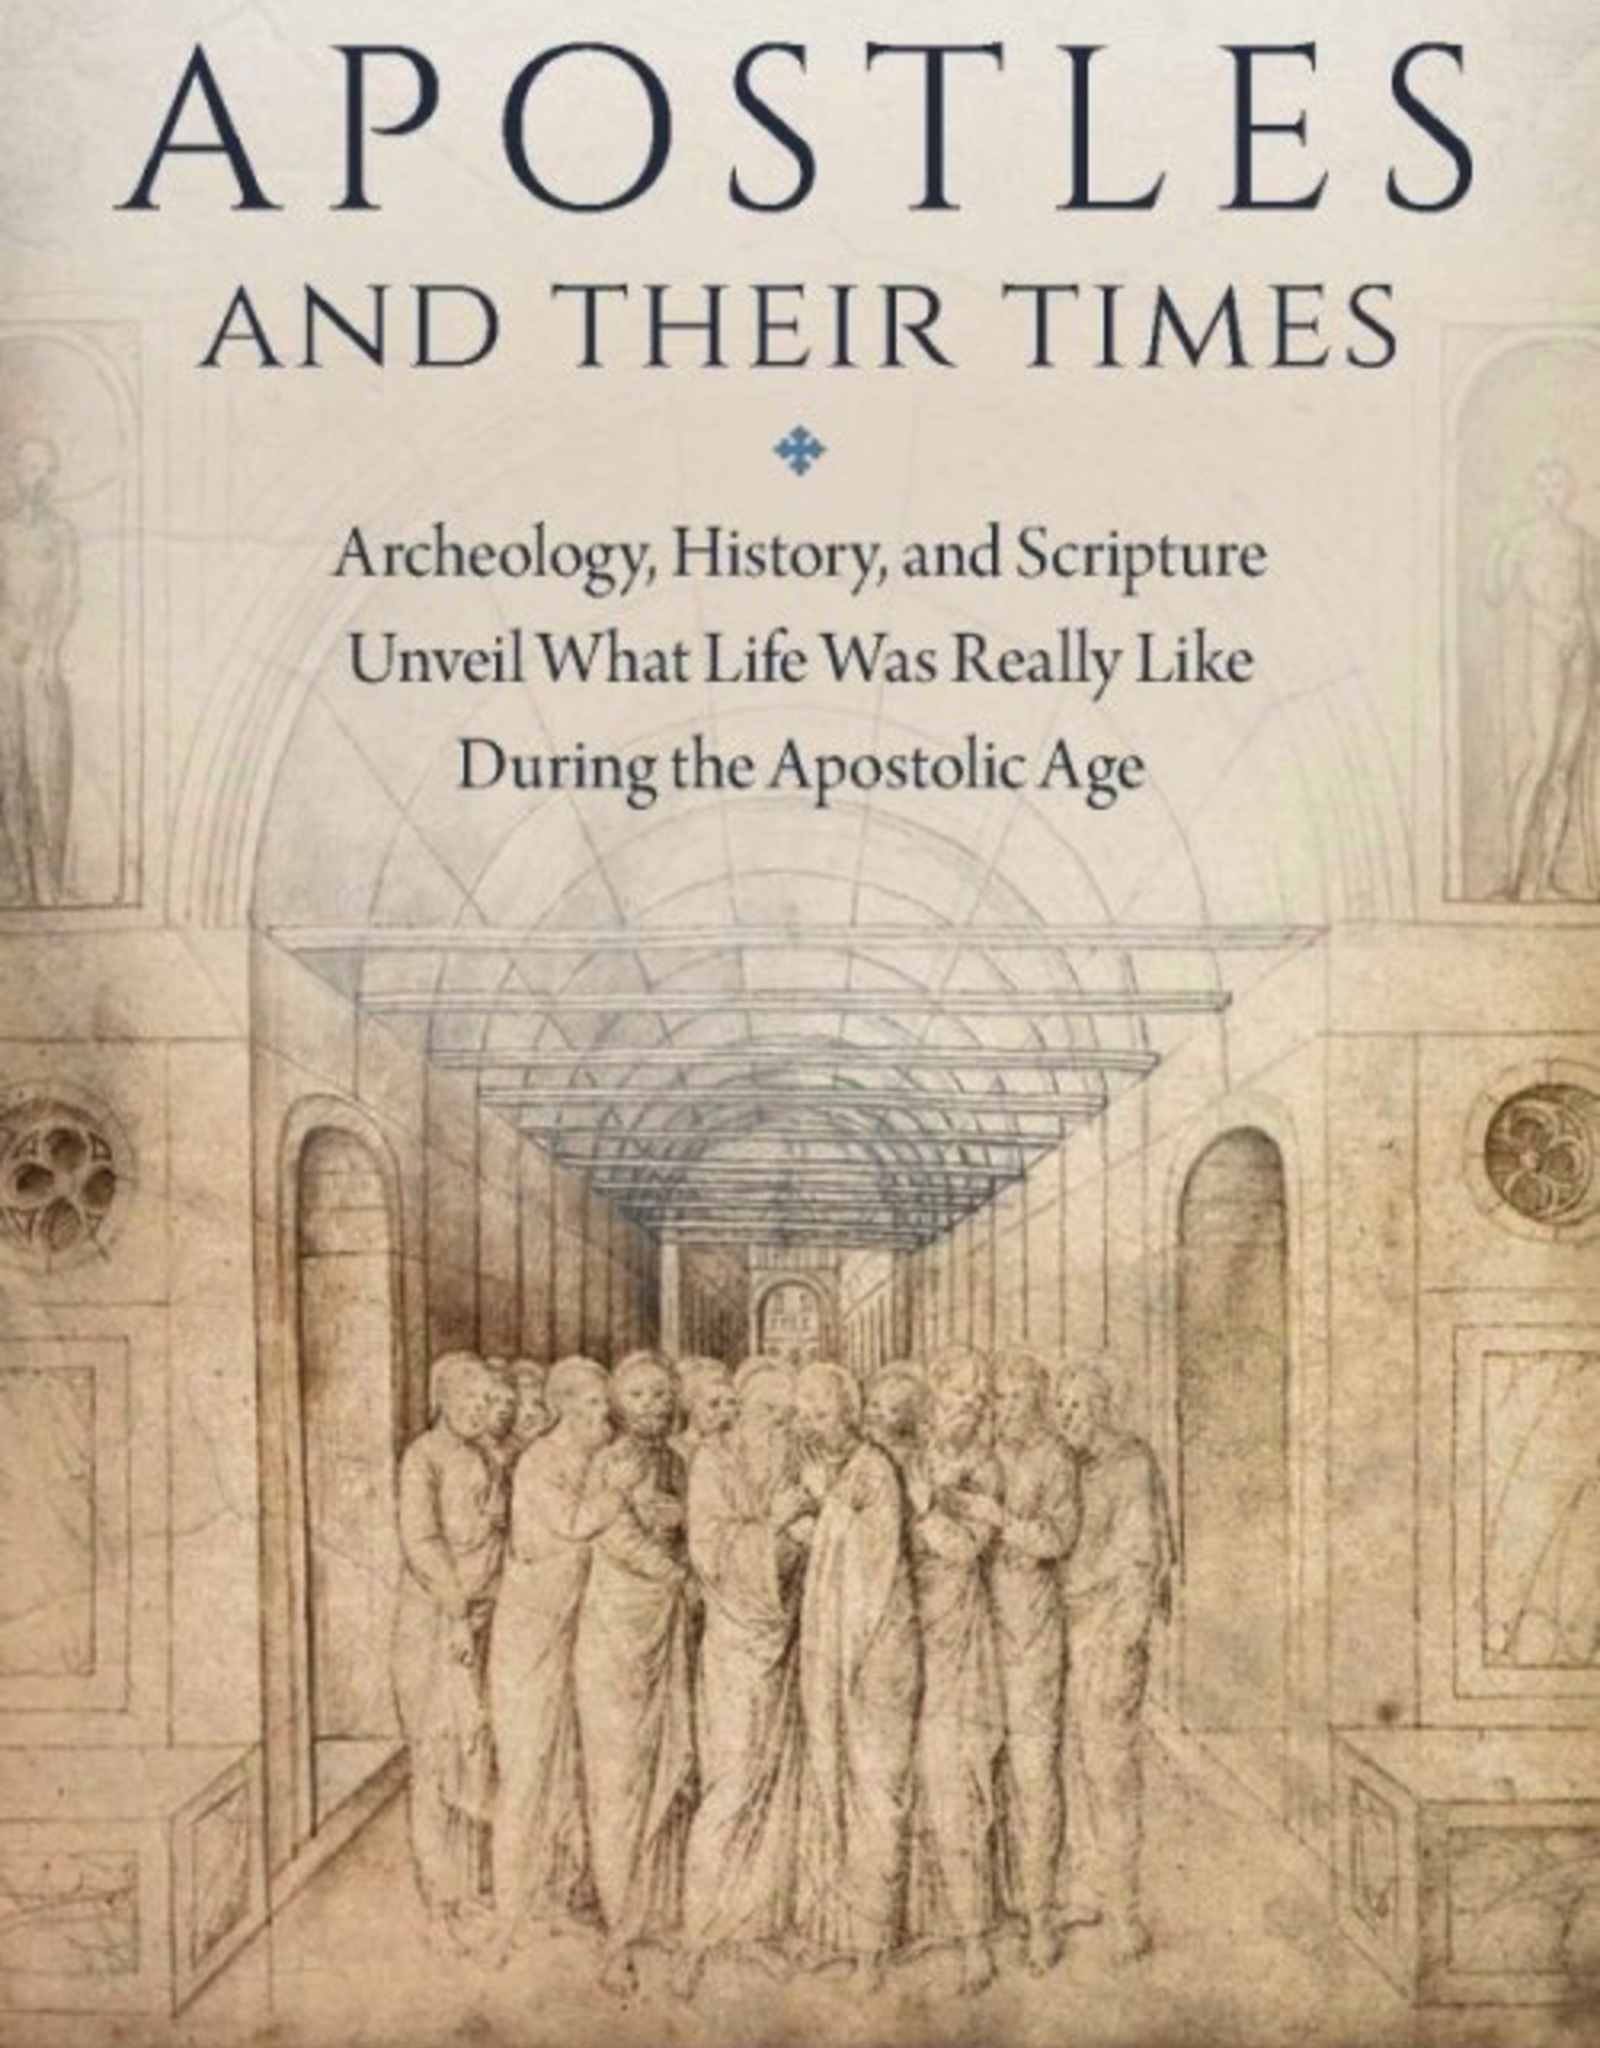 Sophia Institute Apostles and Their Times:  Archeology, History, and Scripture Unveil What Life Was Really Like During the Apostolic Age, by Mike Aquilina (paperback)